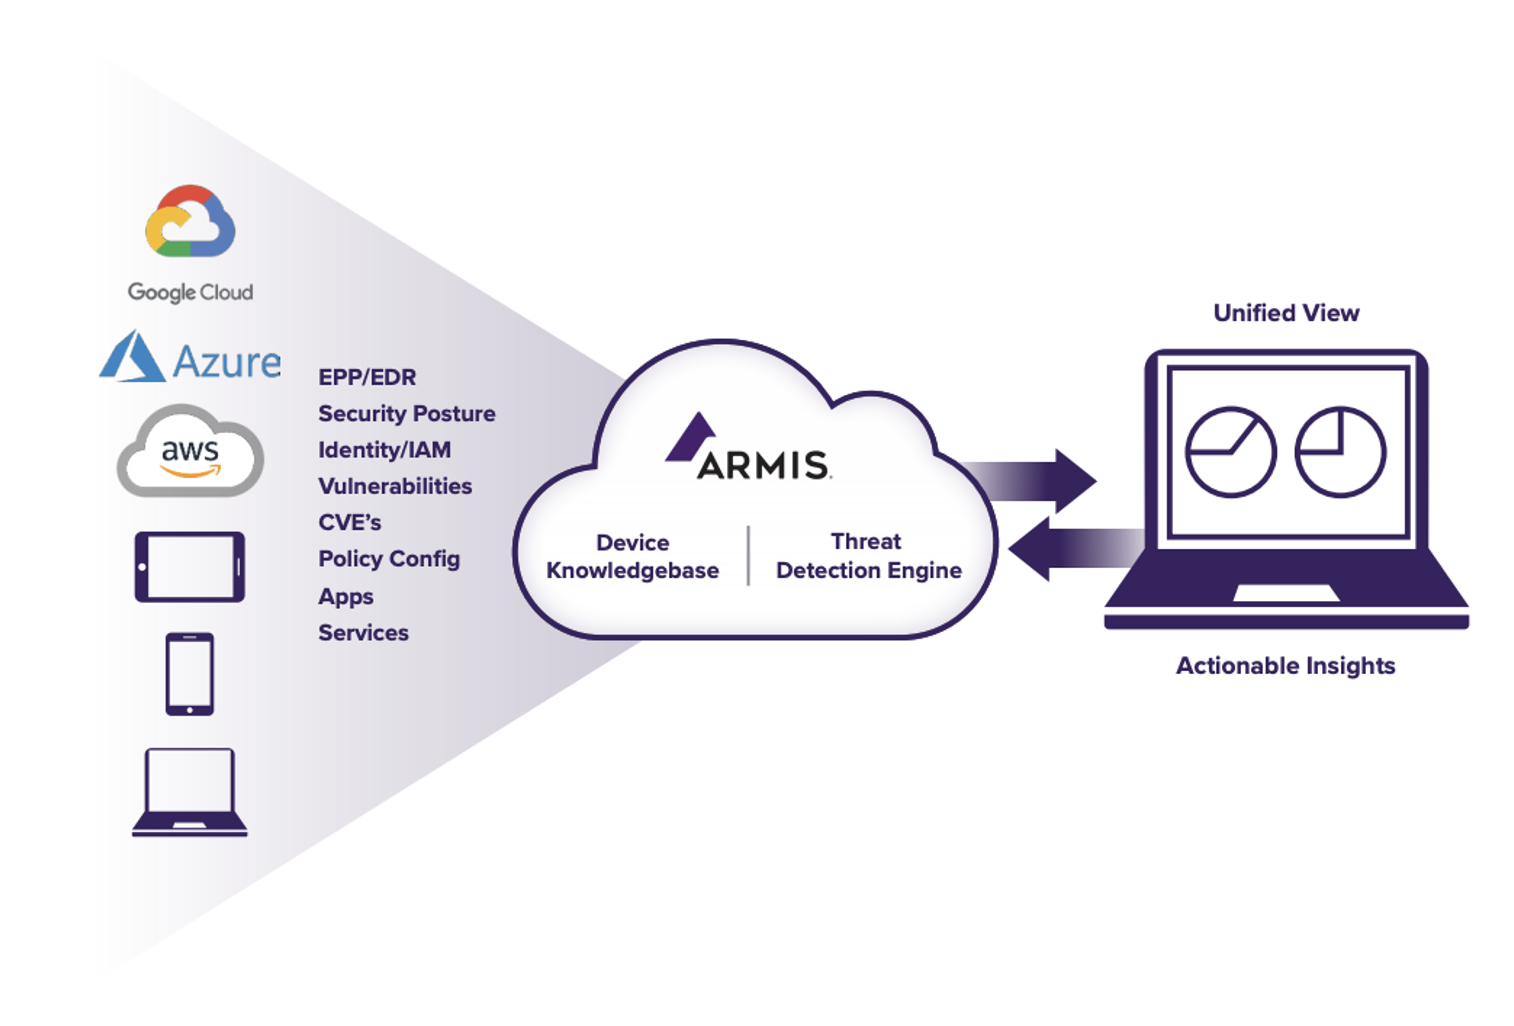 Armis for Work from Home Security